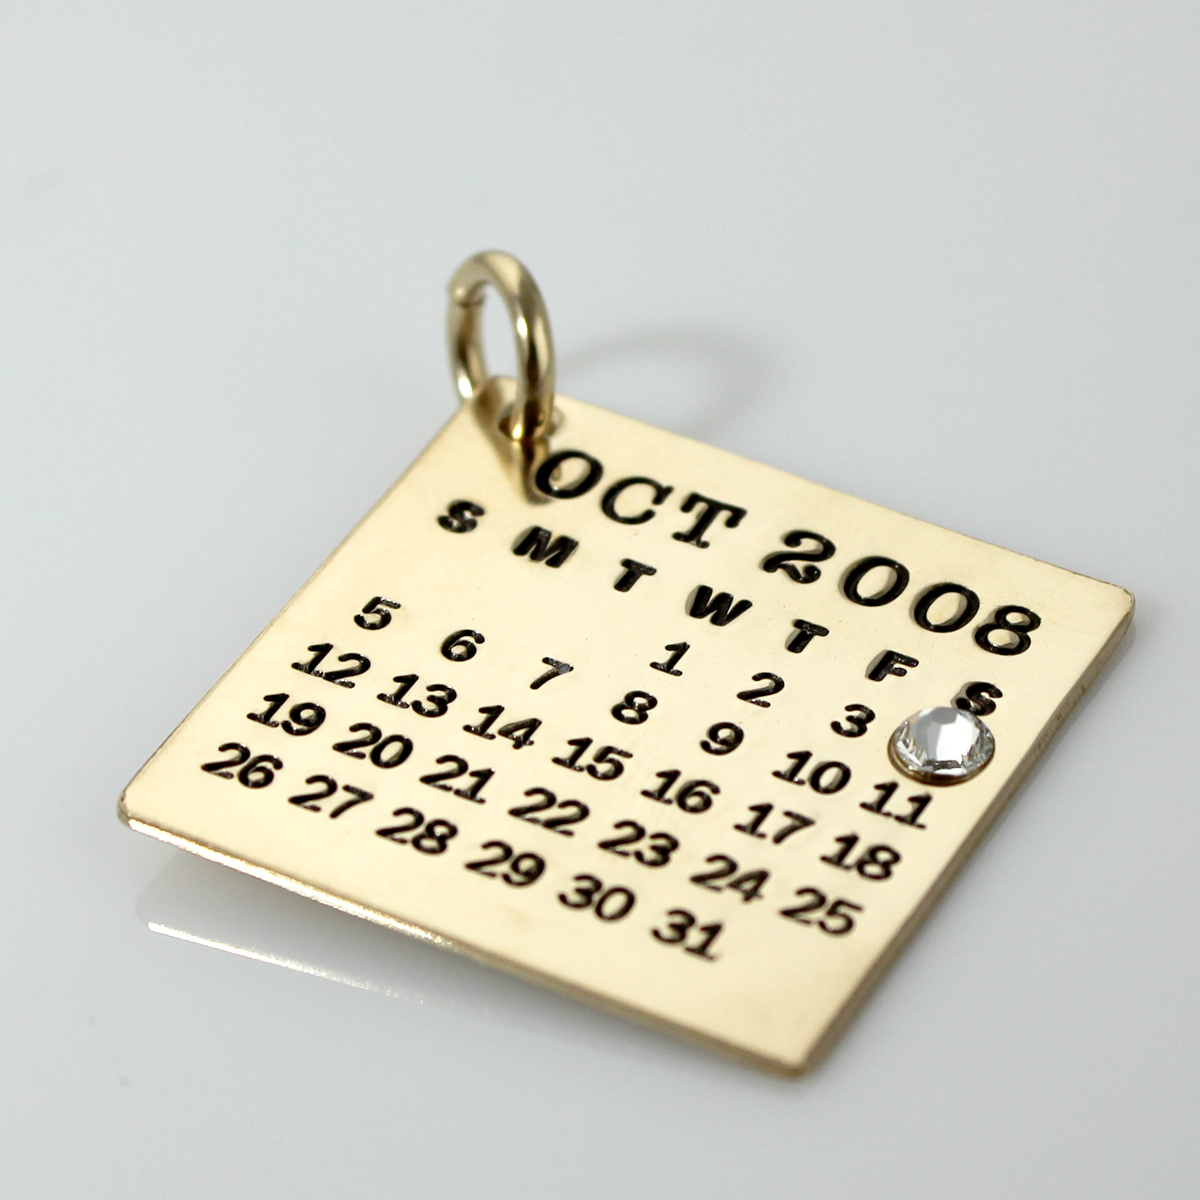 Mark Your Calendar Charm - Gold Filled with crystal over date